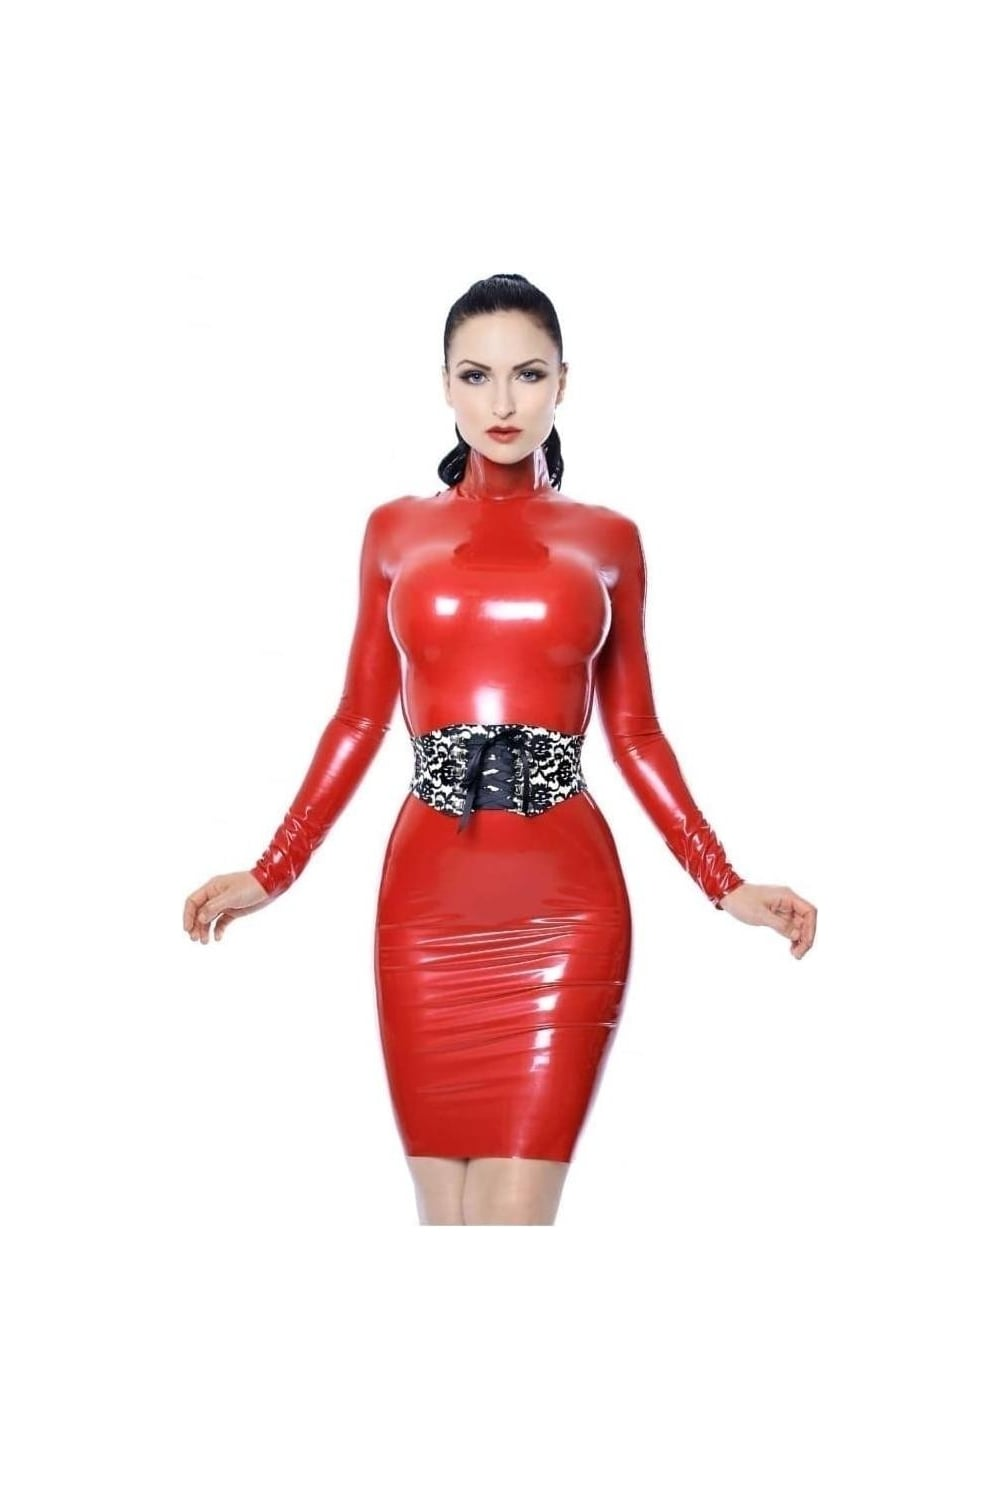 Agree, hand made latex talented